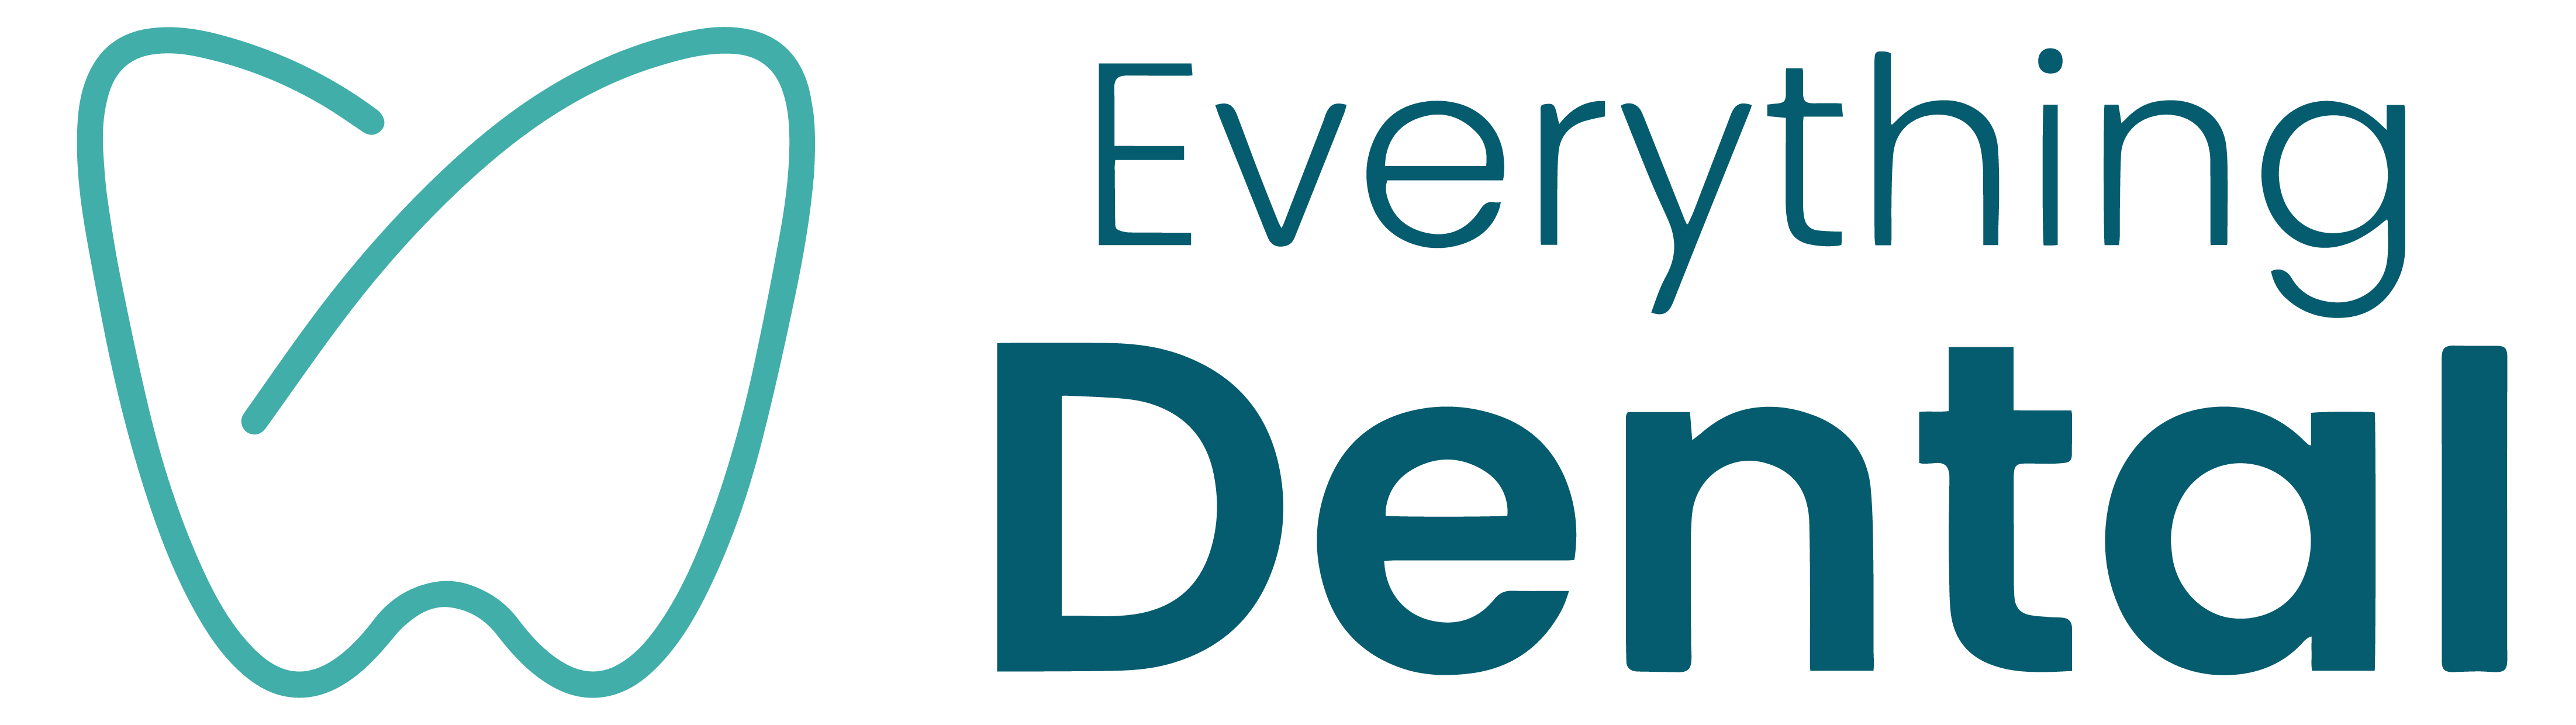 Everything-dental-horizontal-logo